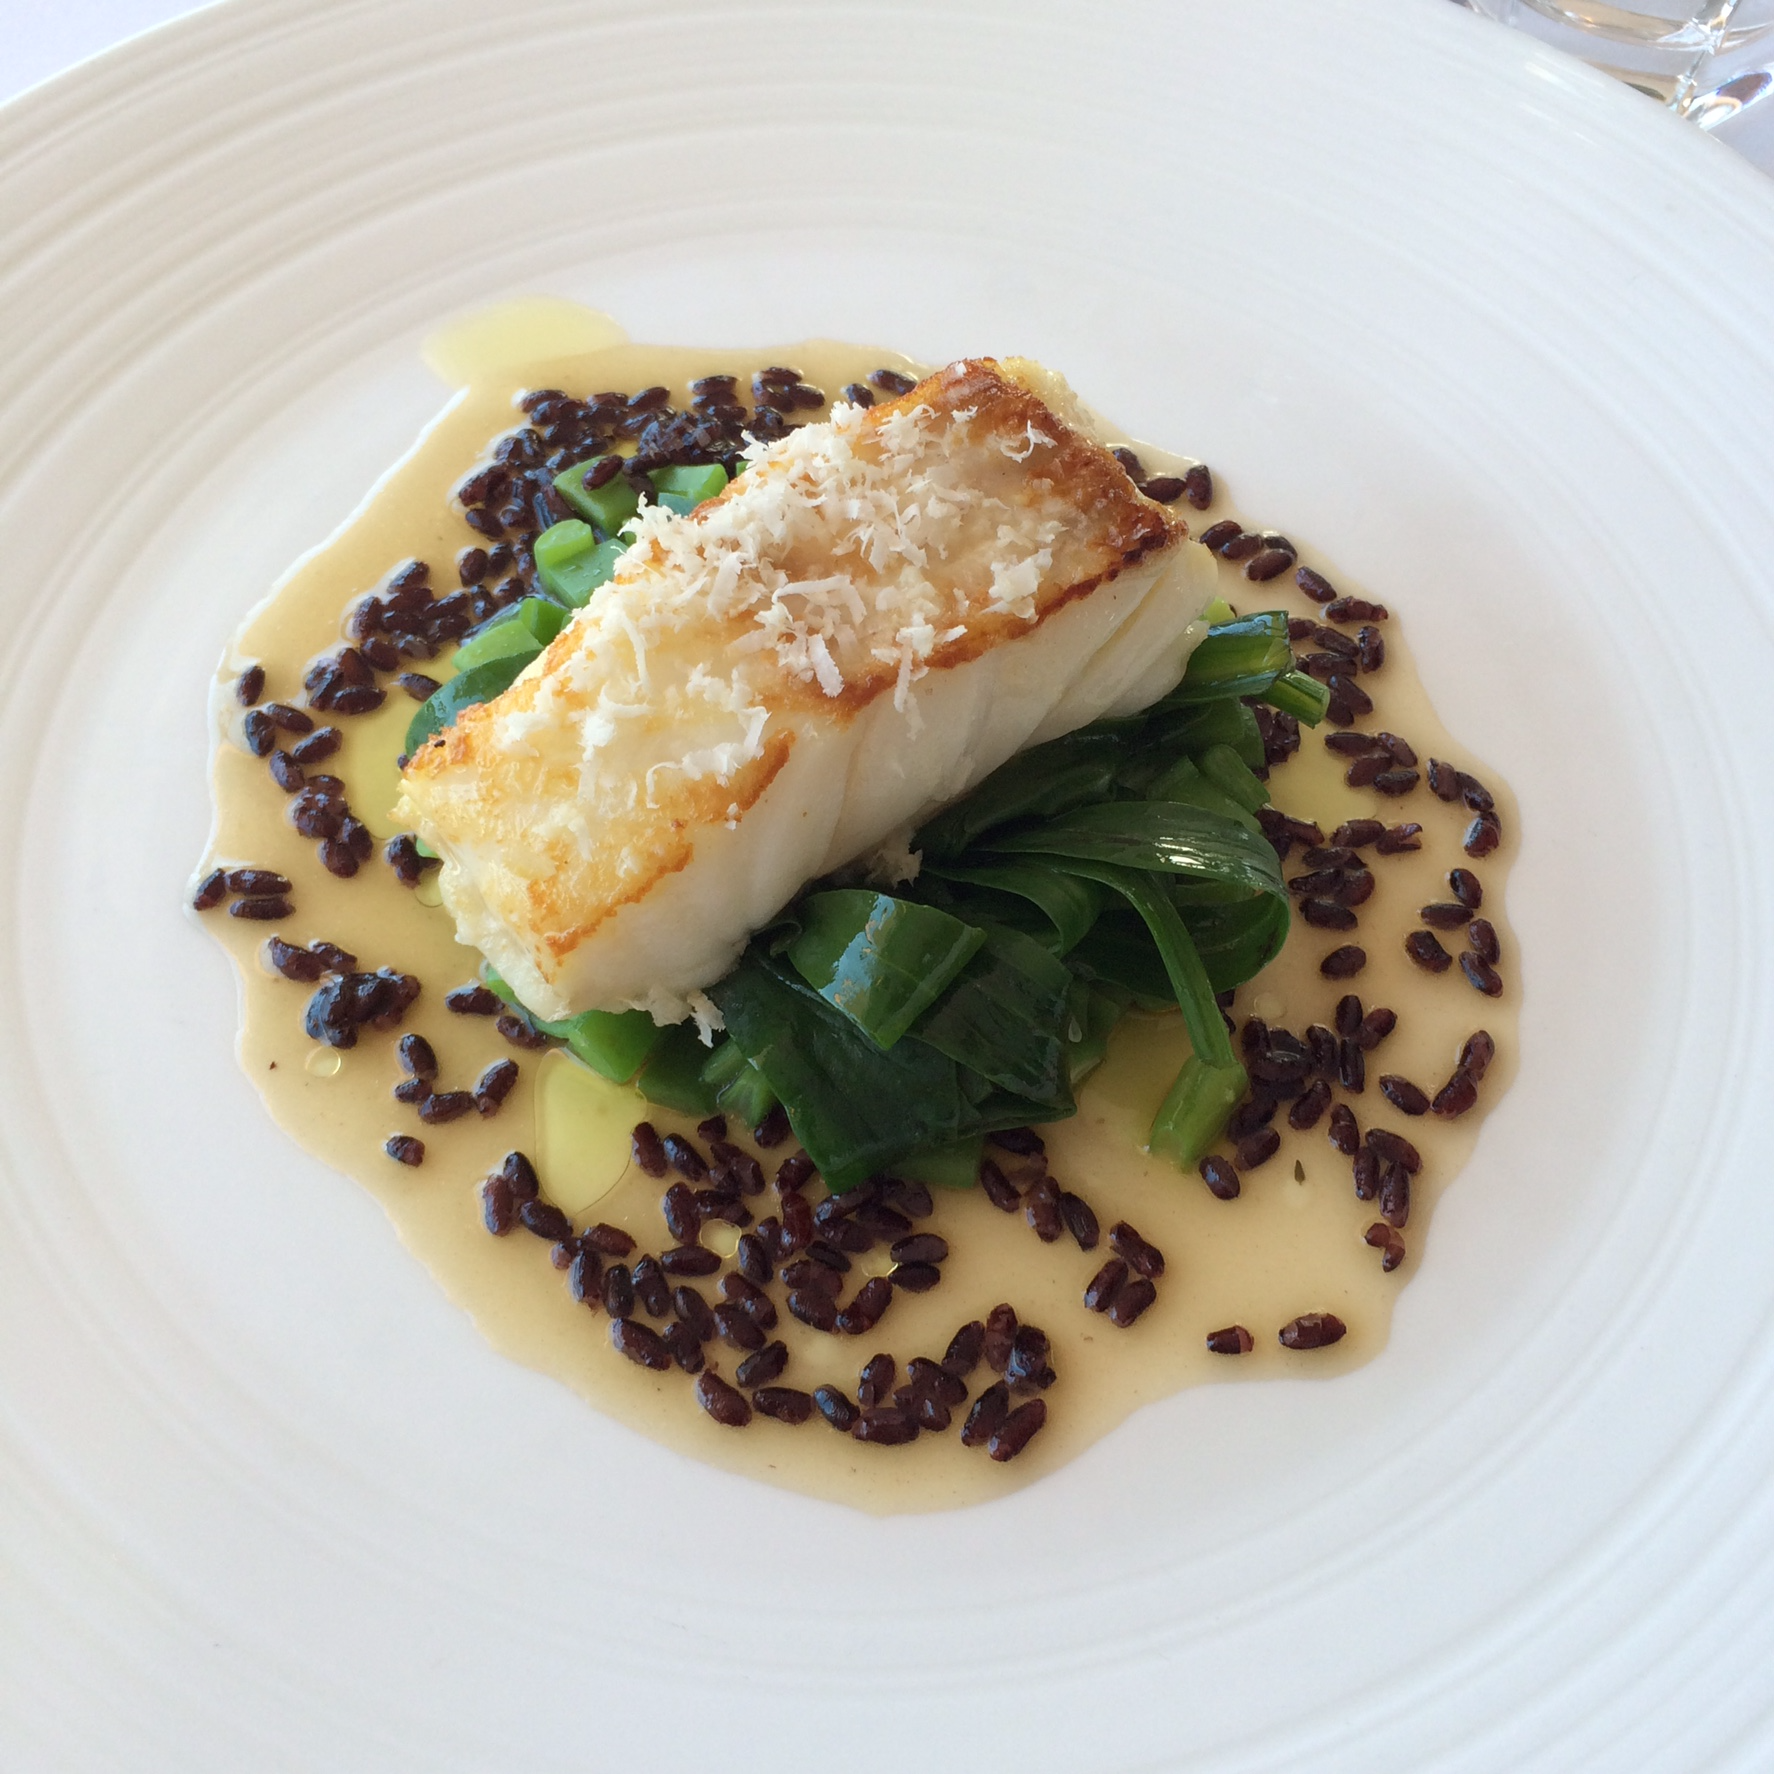 Seinpost - cod, black venus rice, sea lavender